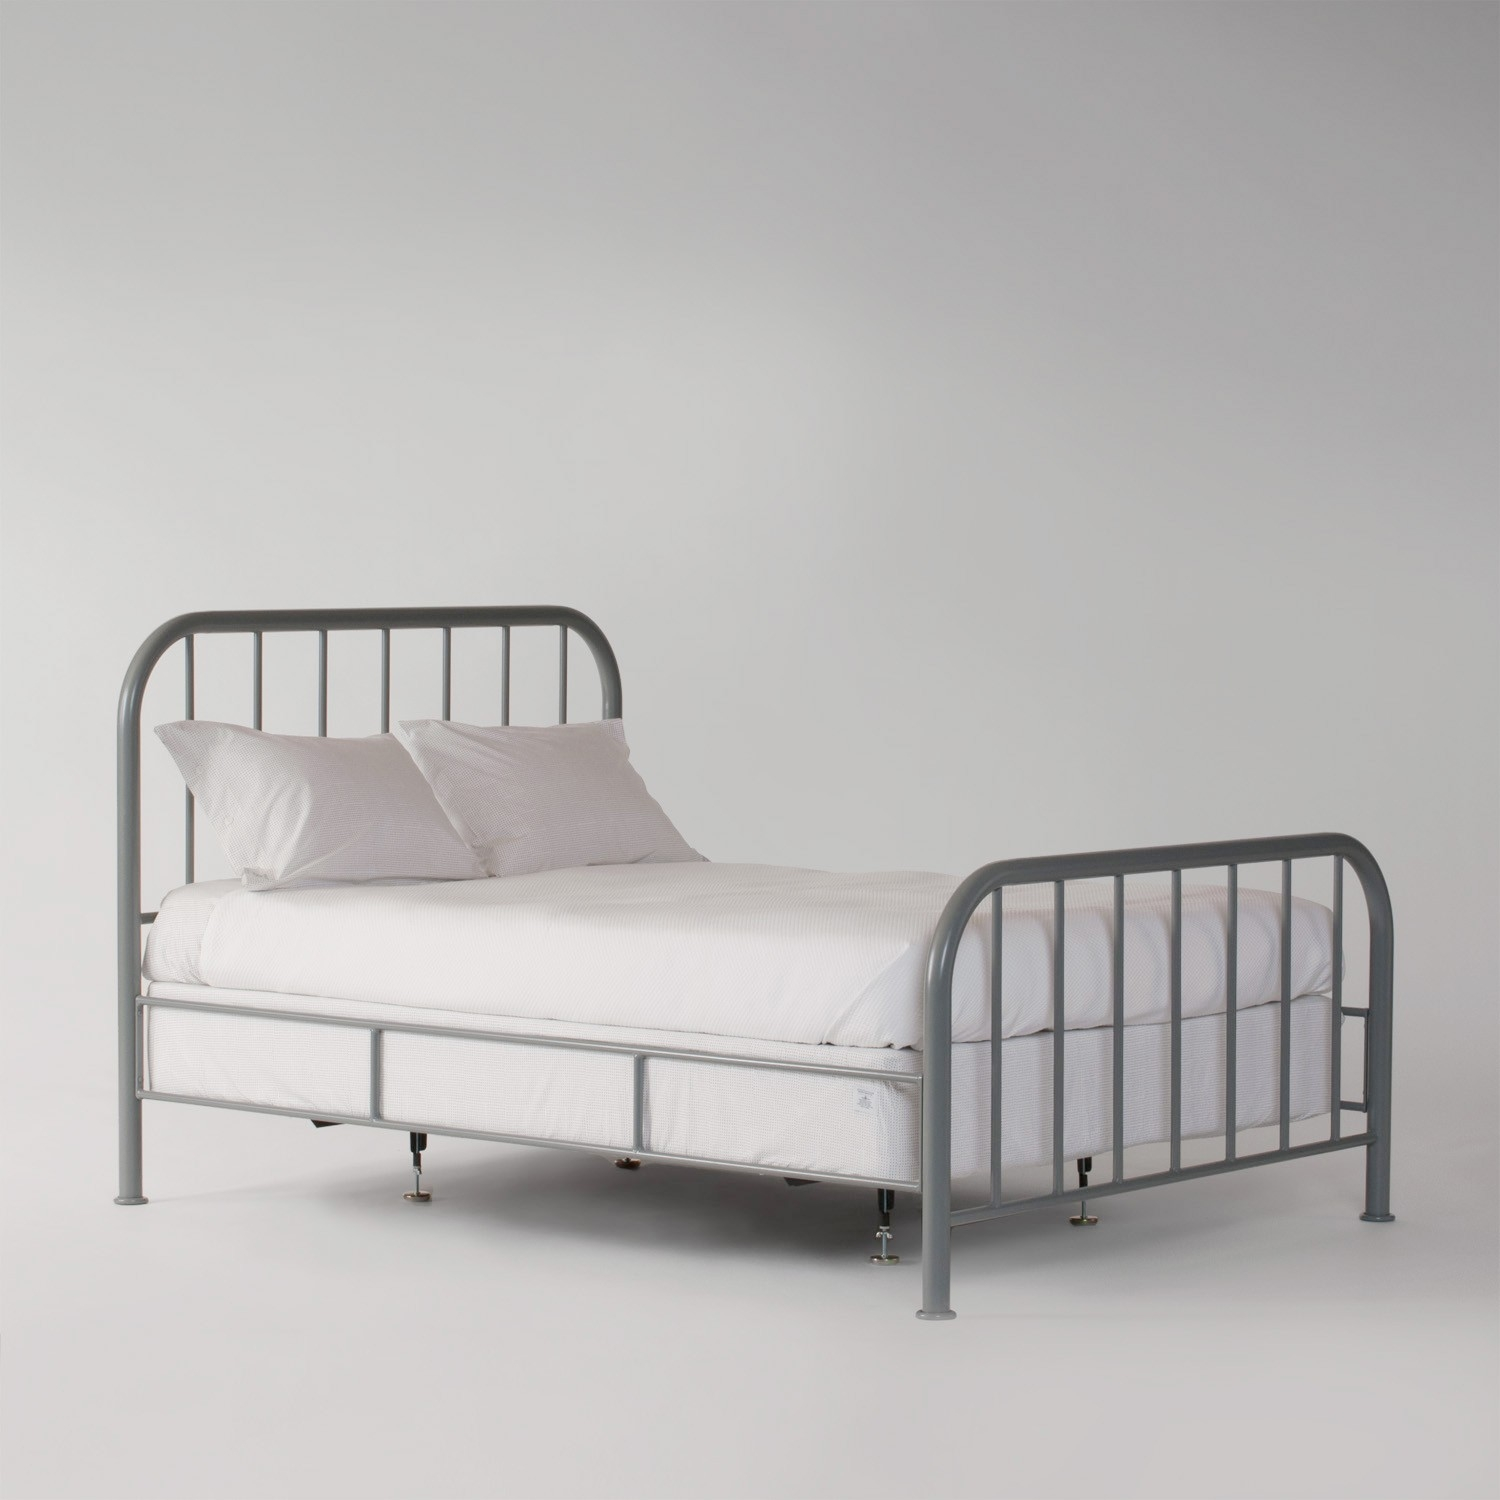 Permalink to Wire Bed Frames